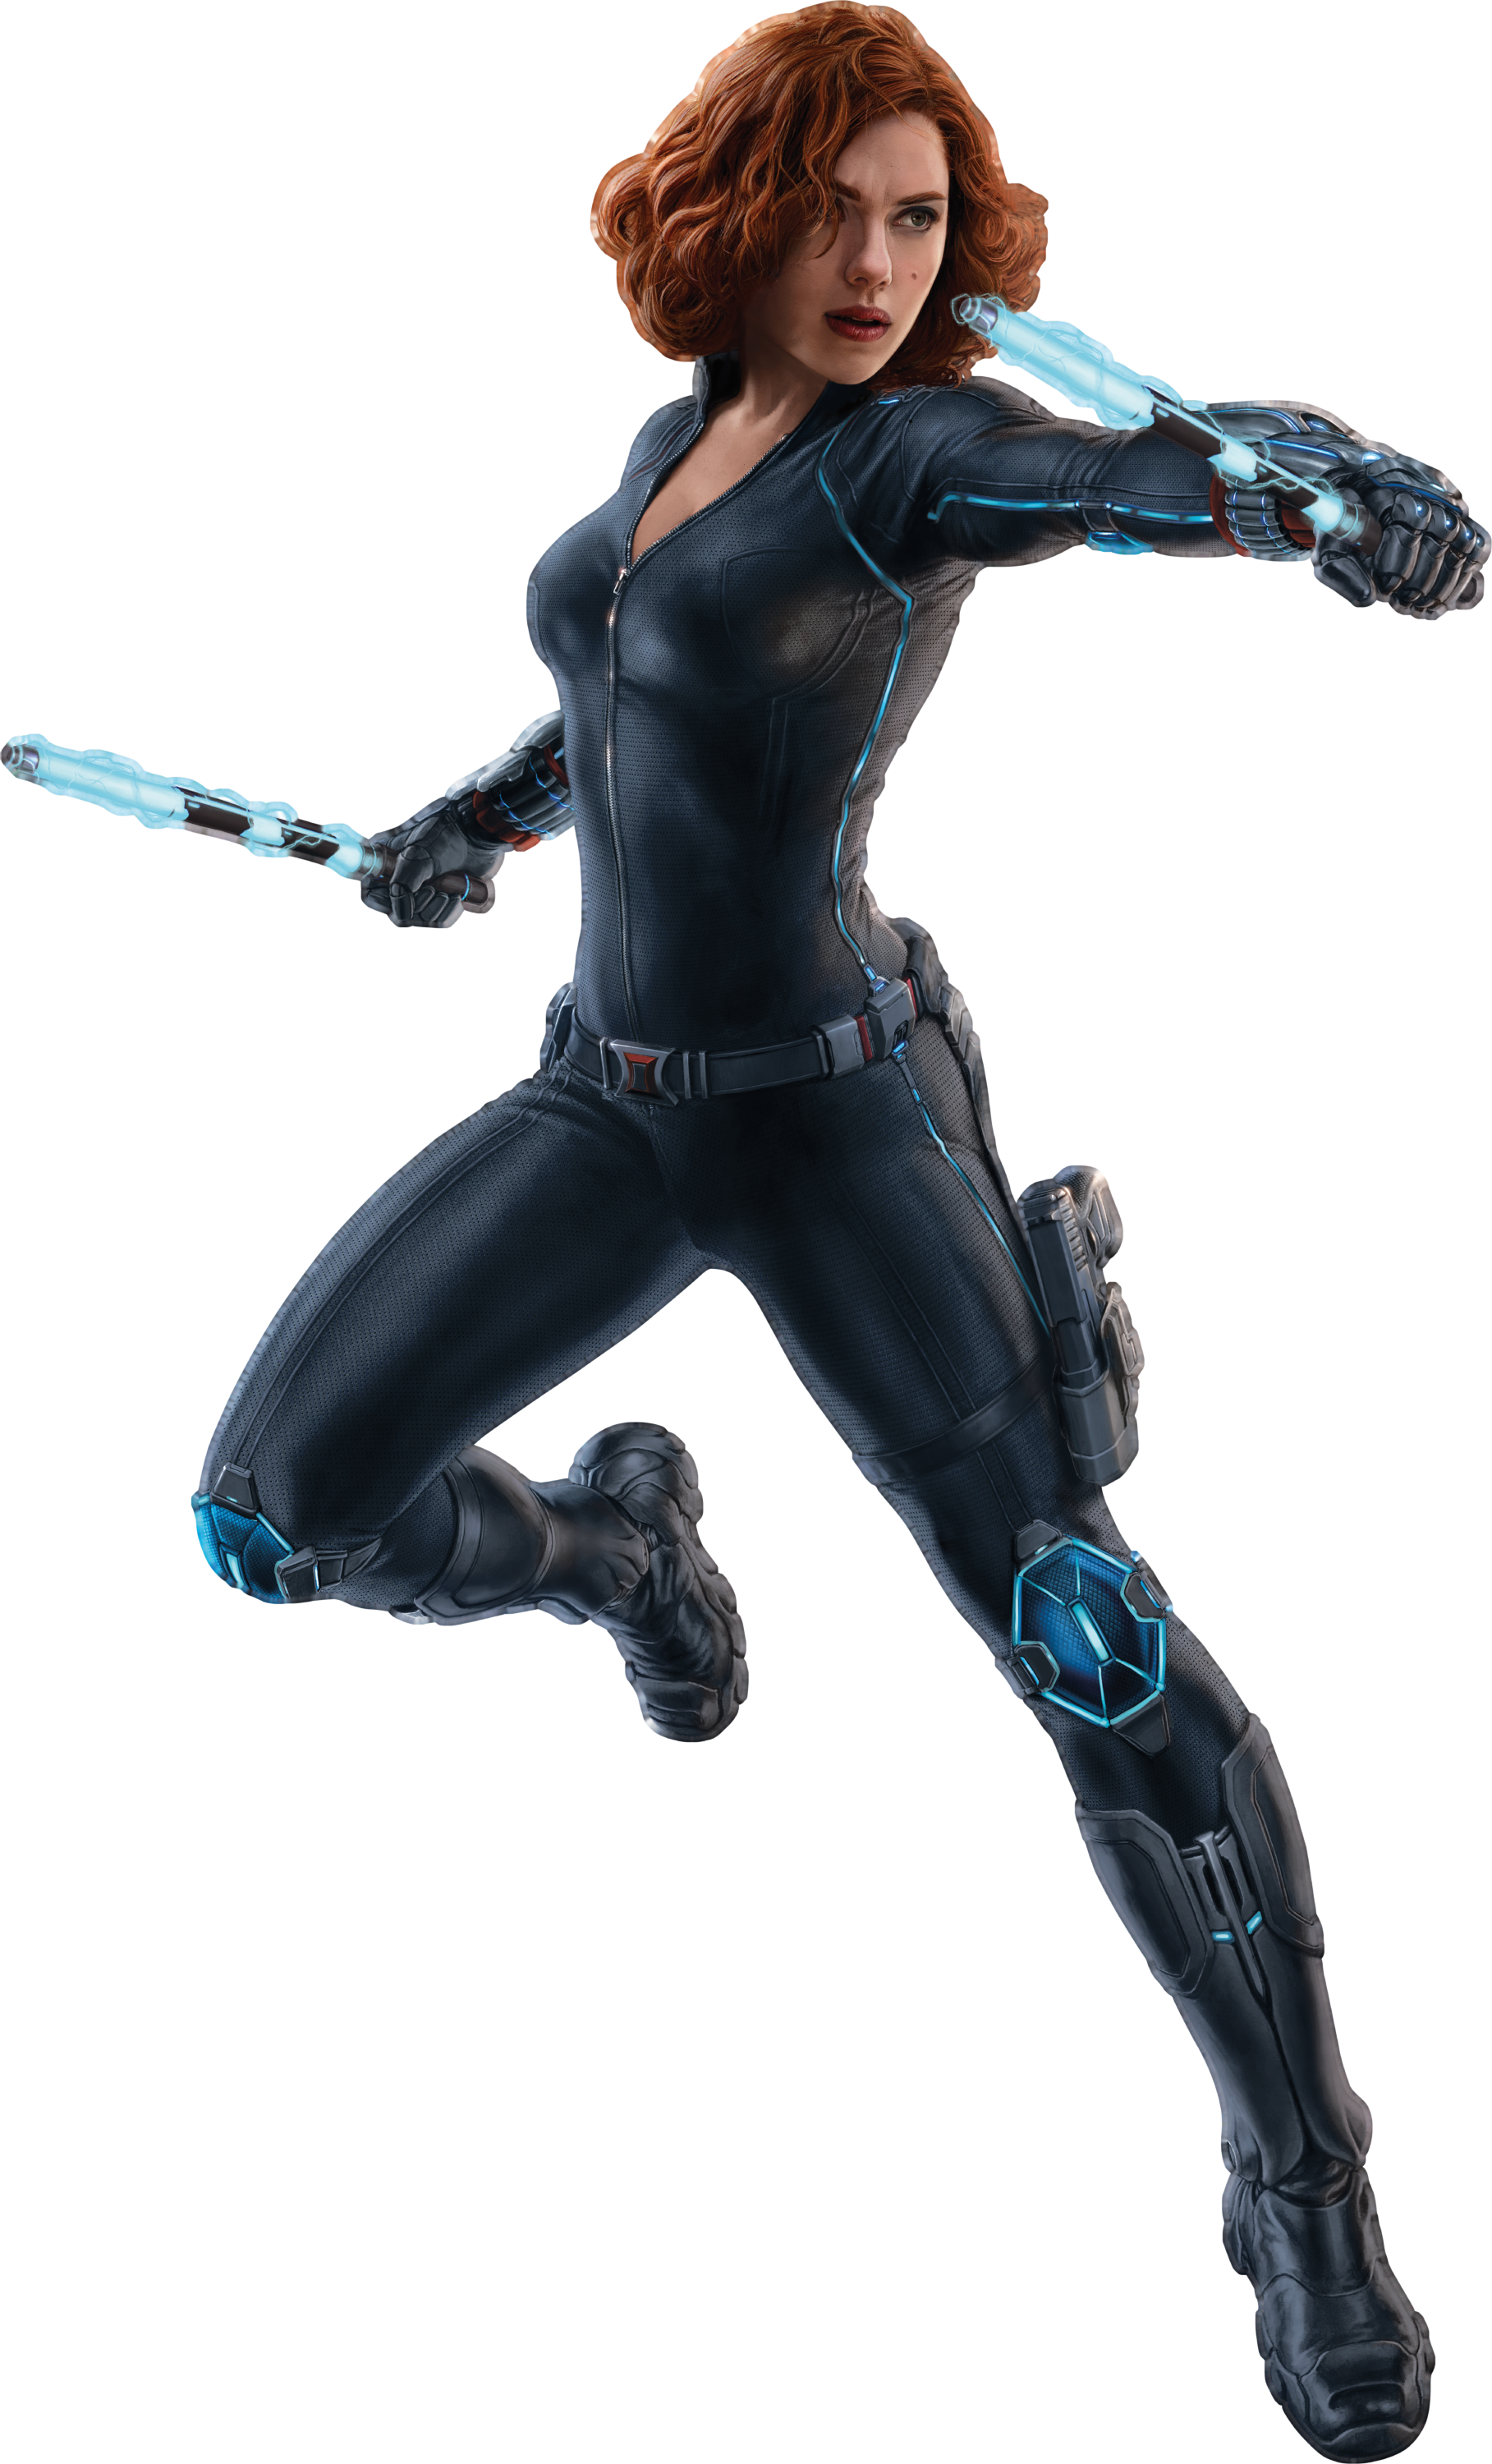 Http Vignette2 Wikia Nocookie Net Maafanficuniverse Images D D7 Aoubw Png Revision Latest Cb 2015042318224 Black Widow Marvel Black Widow Cosplay Black Widow